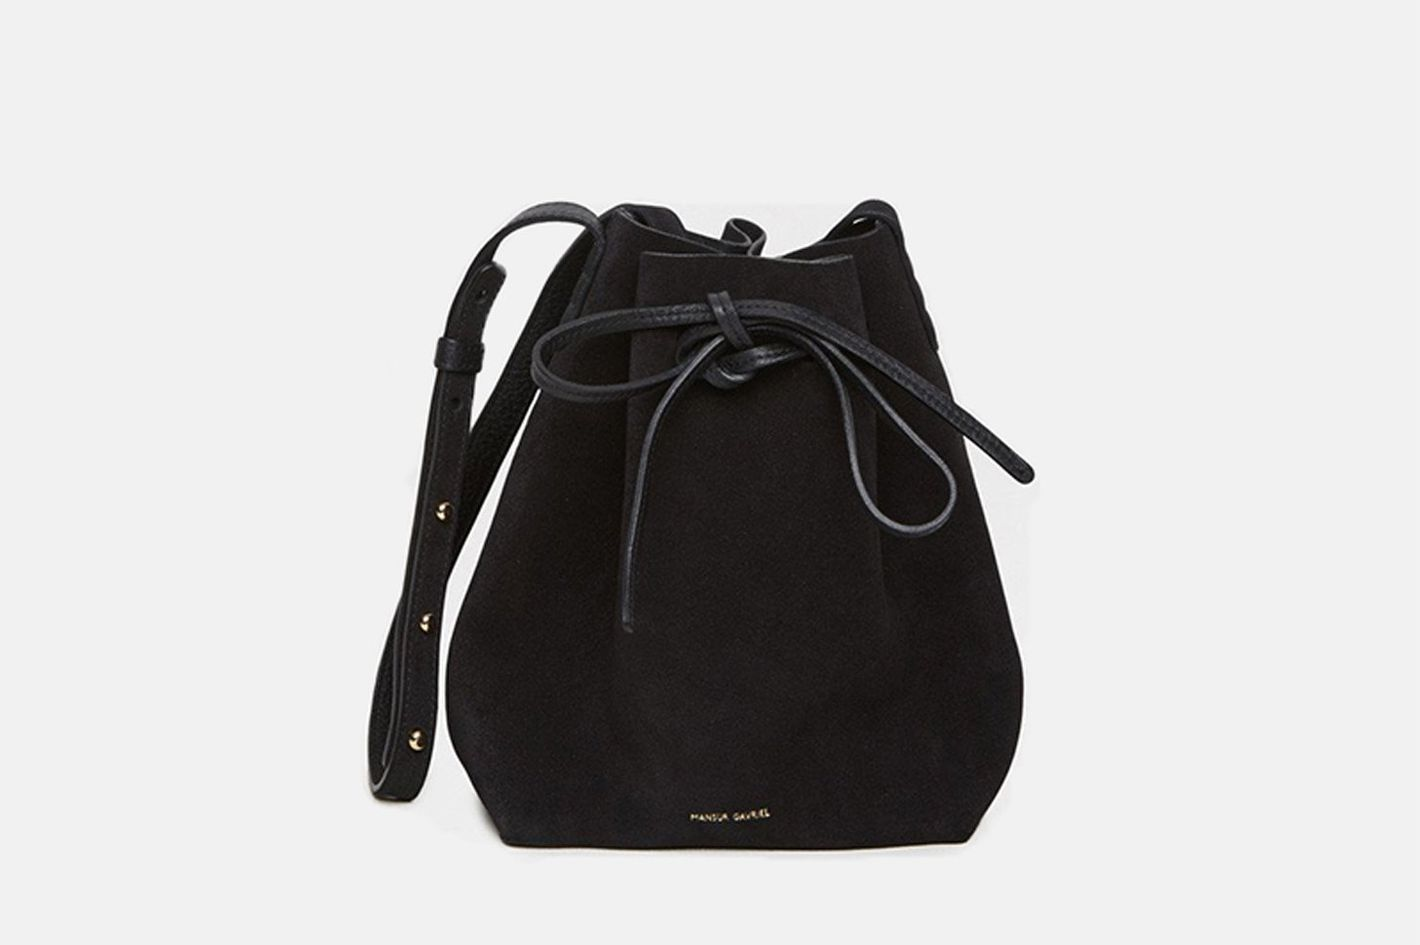 76d3d4e5b6d3 Mansur Gavriel Bucket Bag on Sale 2018